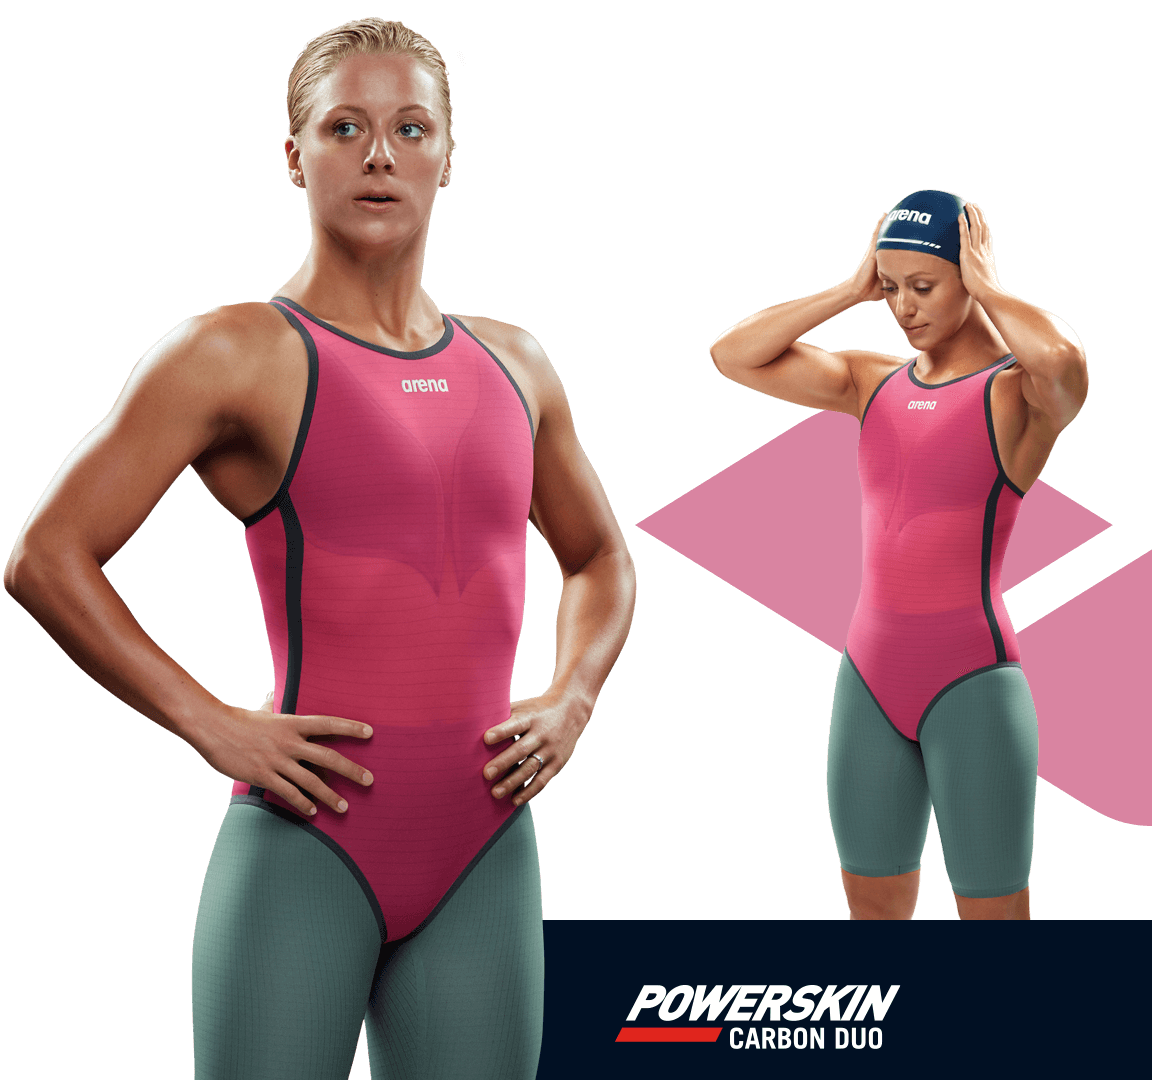 Combinaison arena Powerskin Carbon Duo